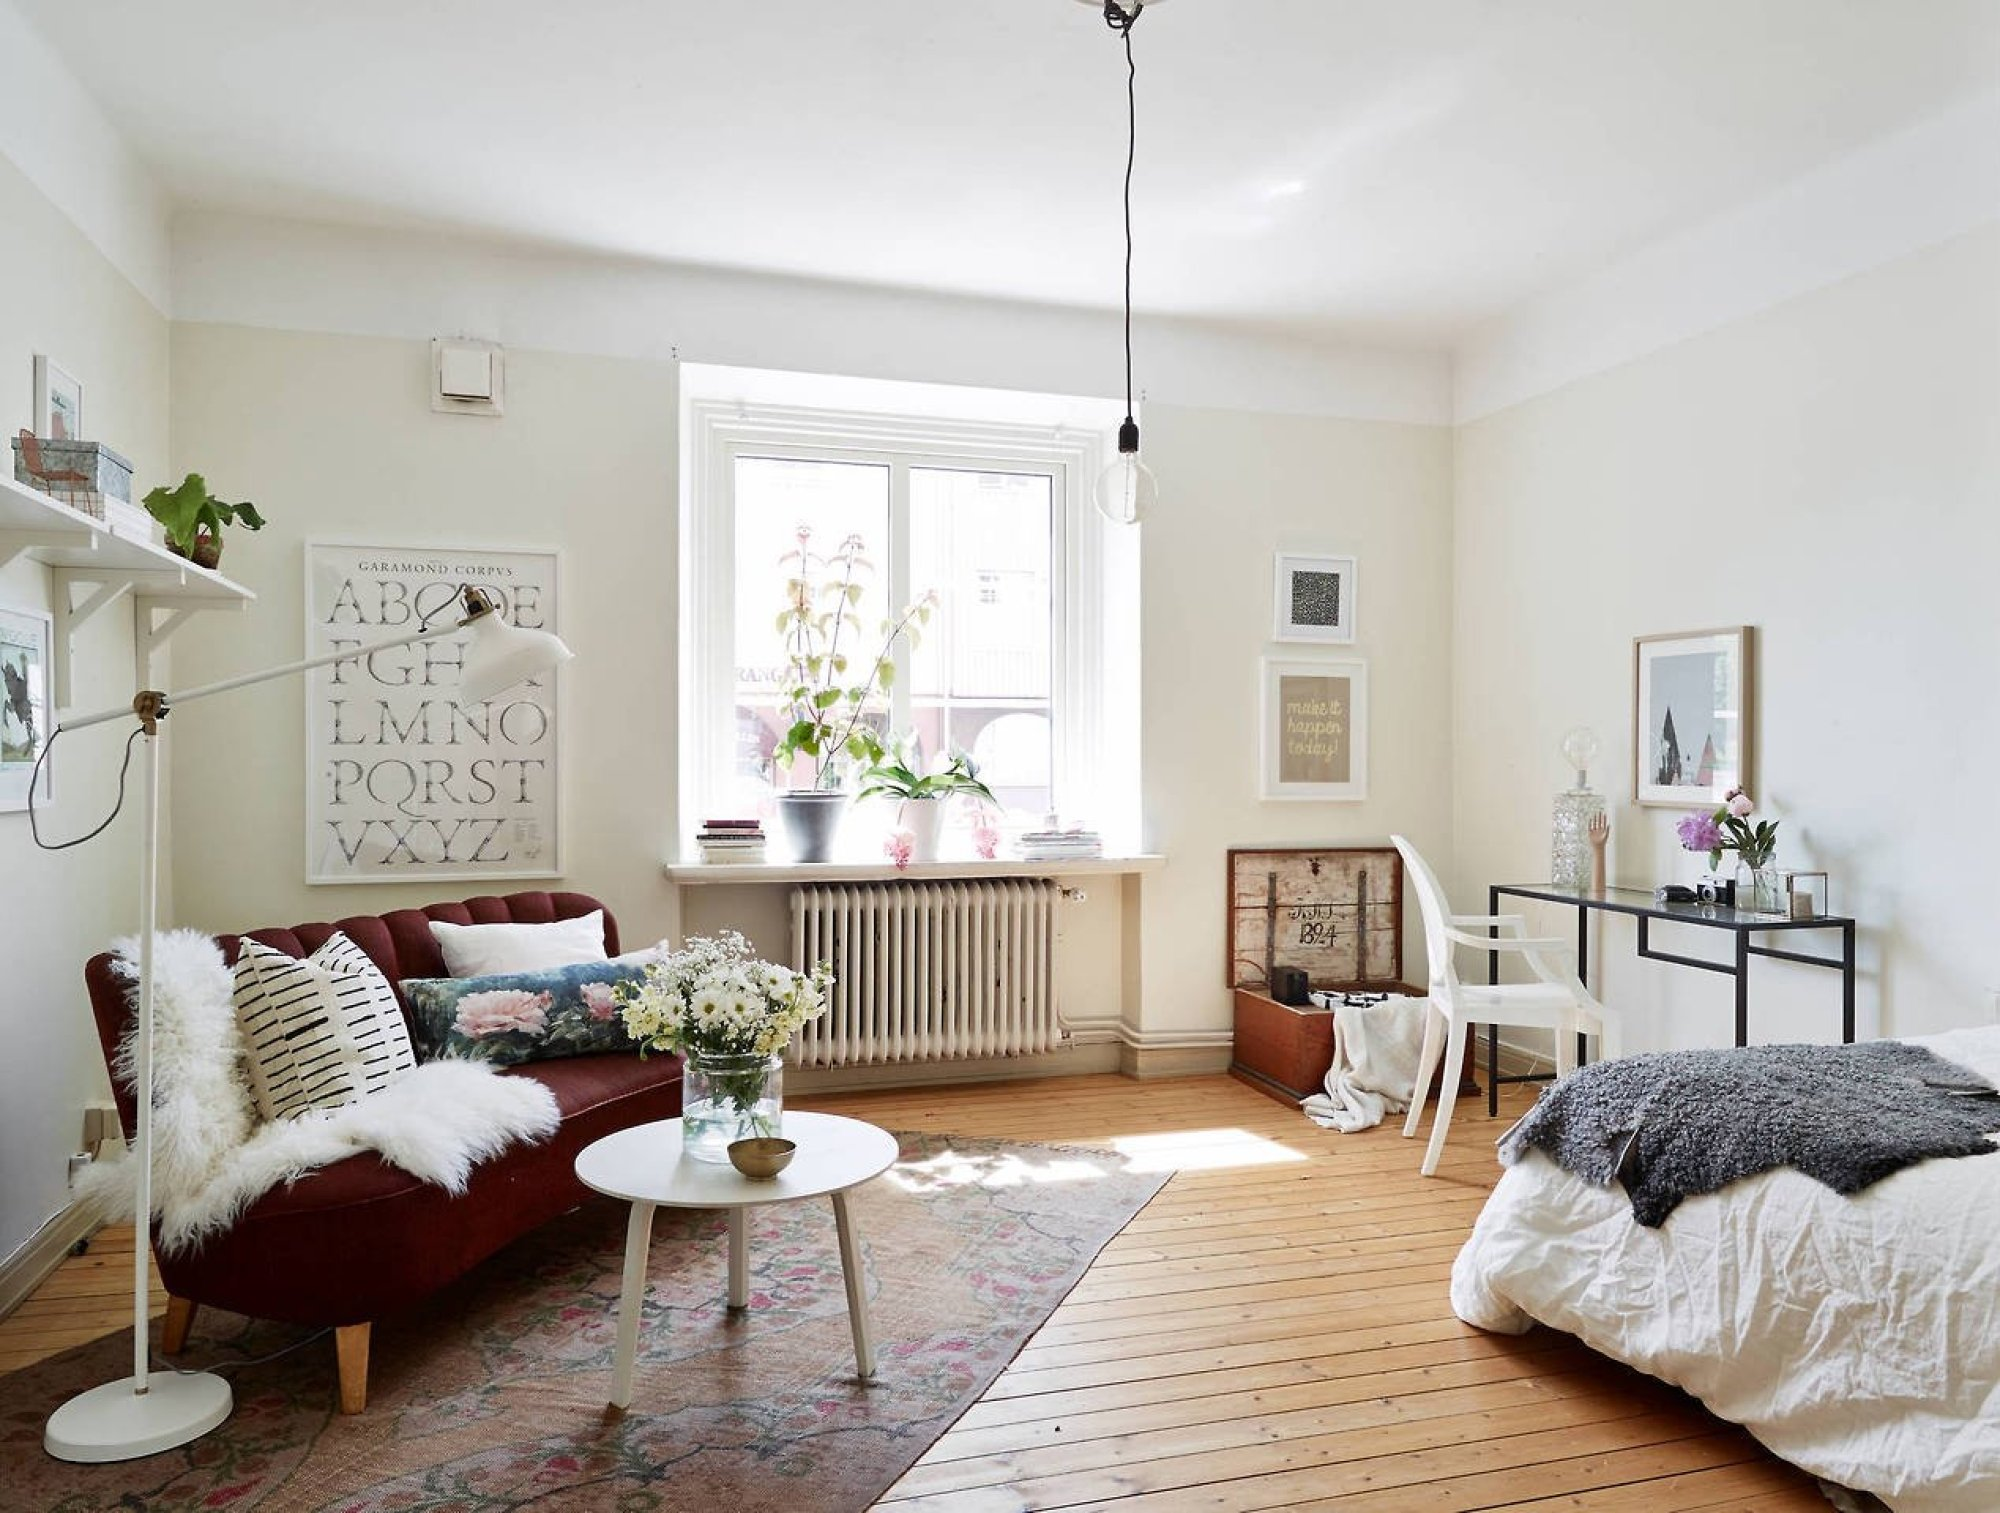 If you are looking for inspiration on how to decorate your small bedroom check out these fantastic spacesaving design and furniture ideas